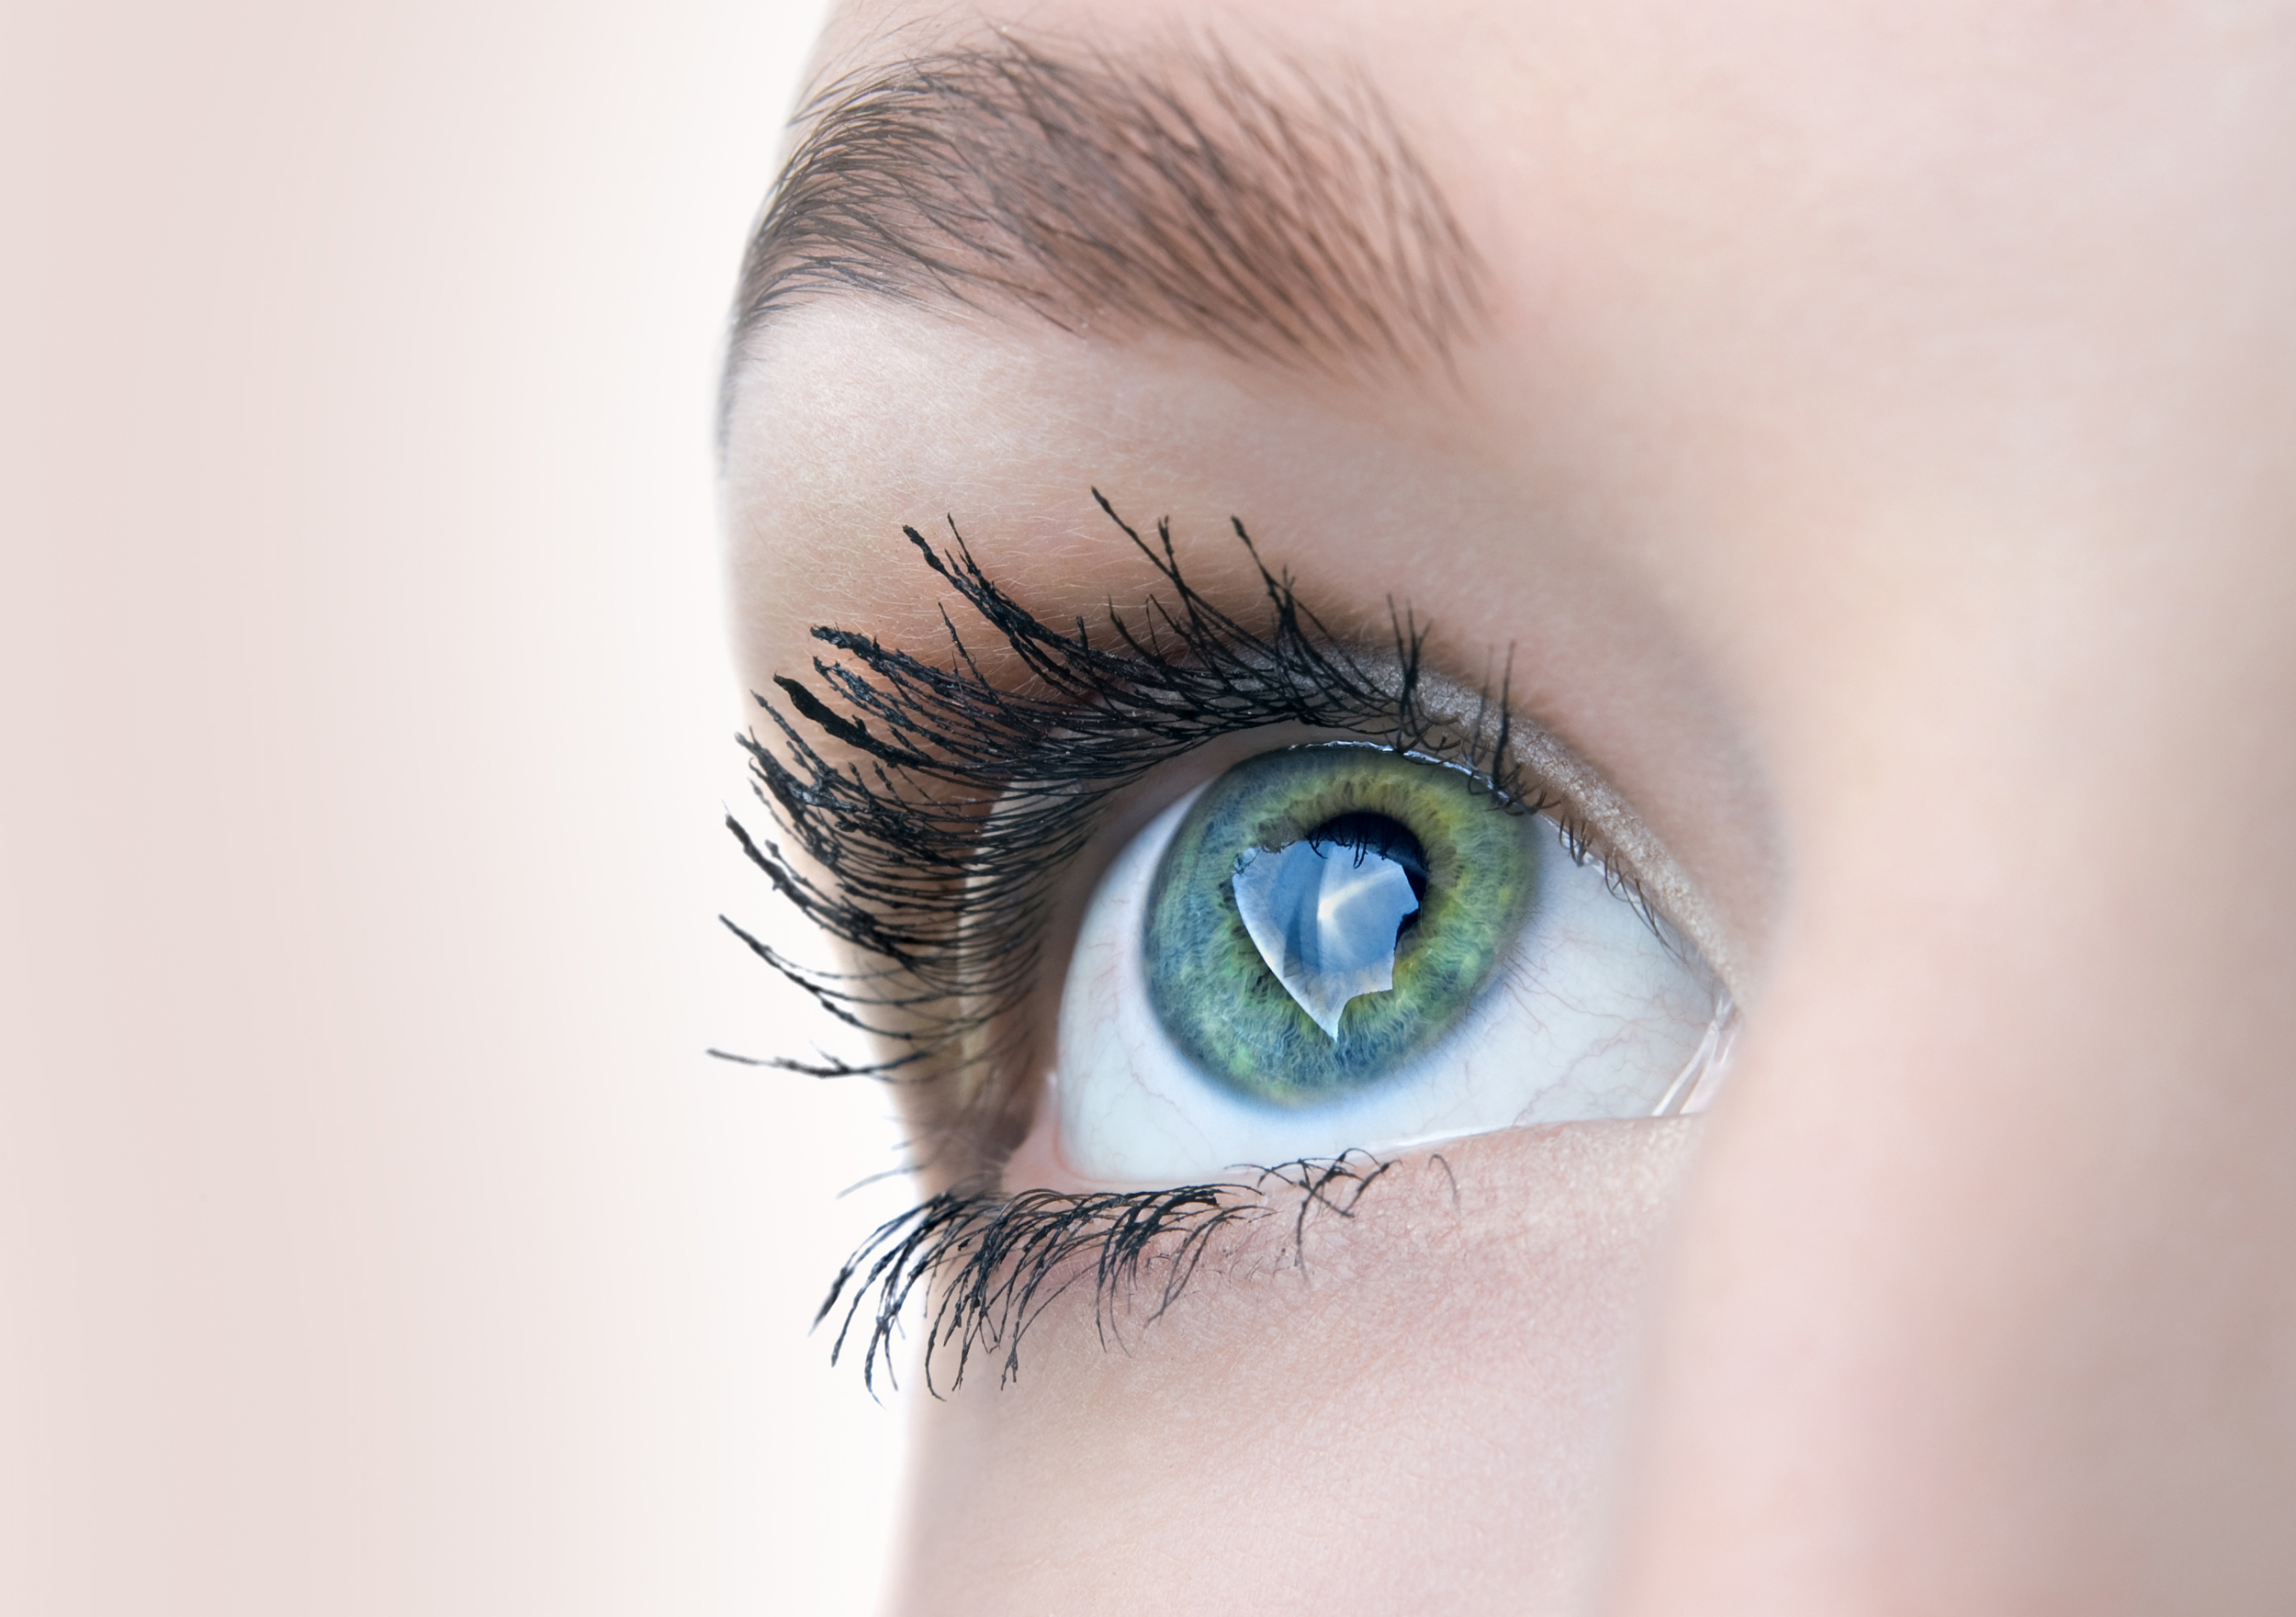 Lash extensions may dry out your eyes: What you need to know ...